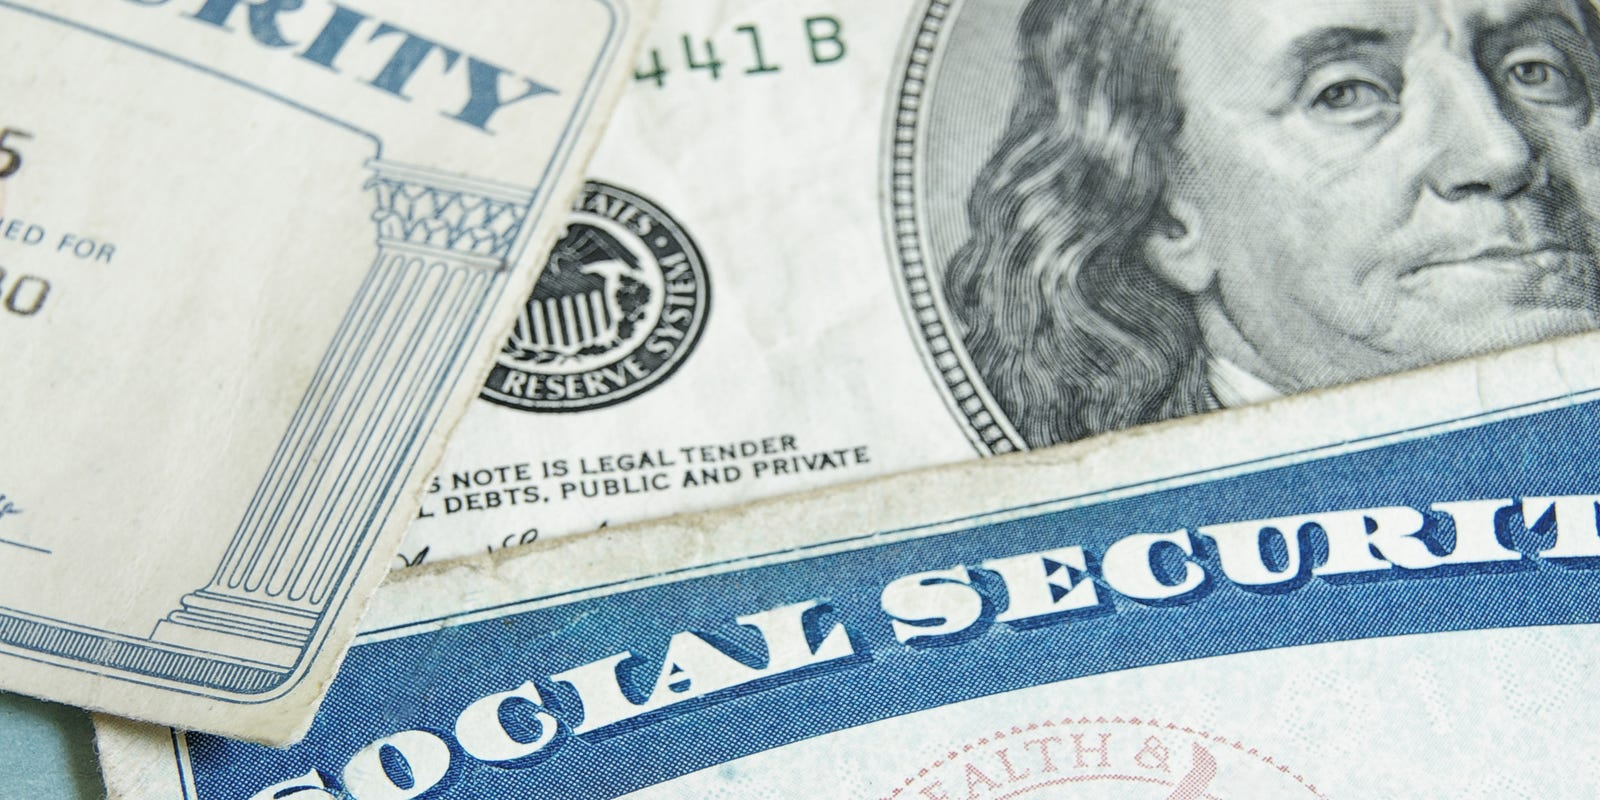 Social Security: Make sure you get the full benefits you deserve